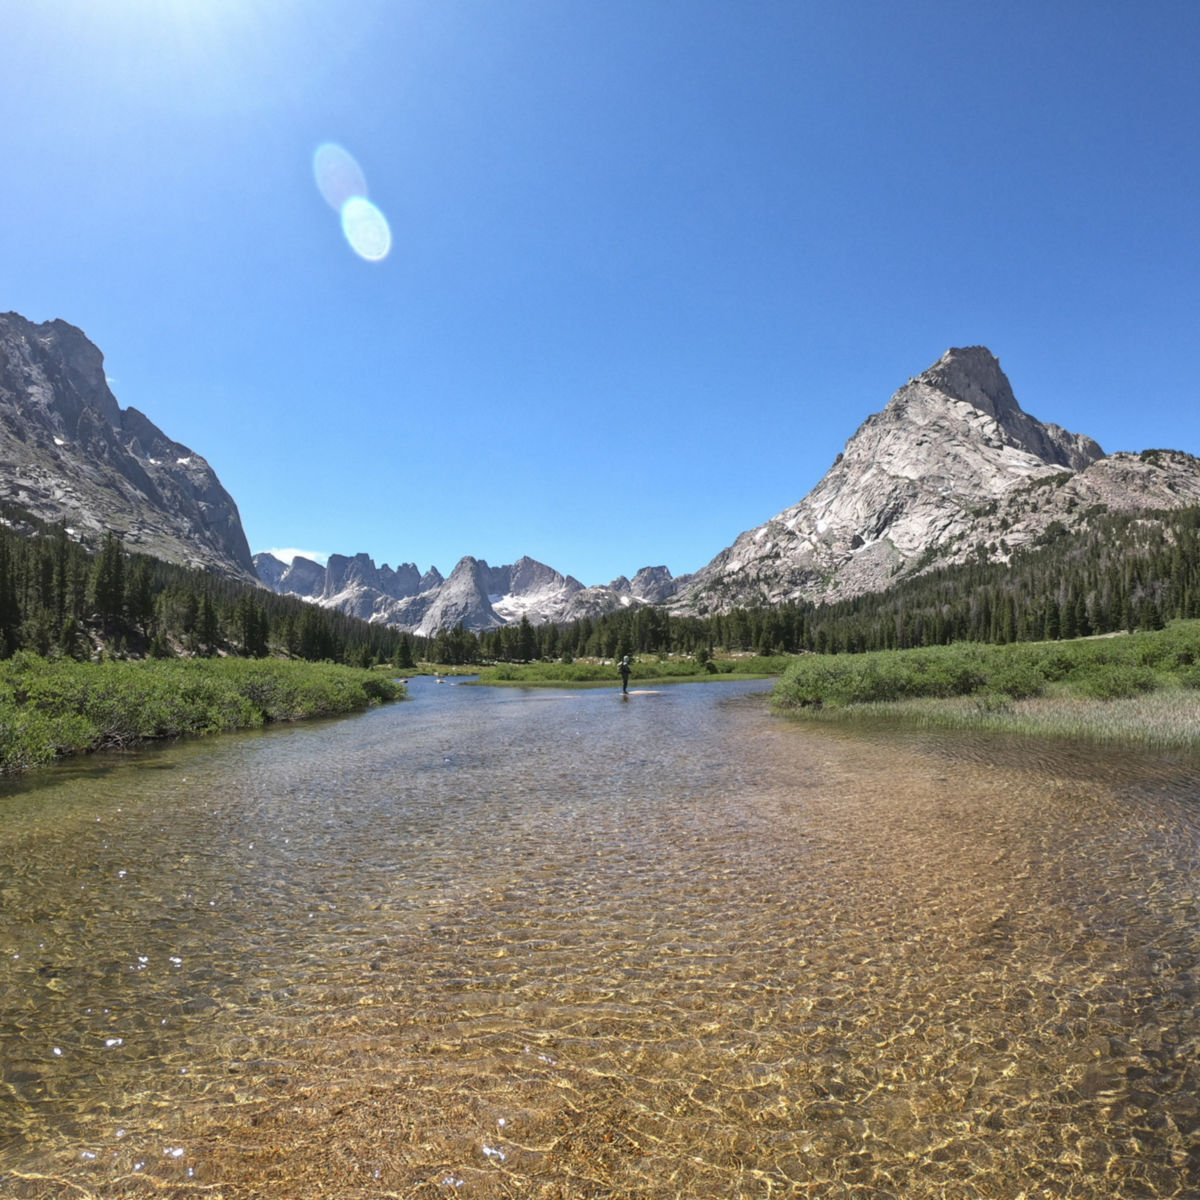 George H. Hunker, Sweetwater Fishing Expeditions, LLC, WY - image number 0